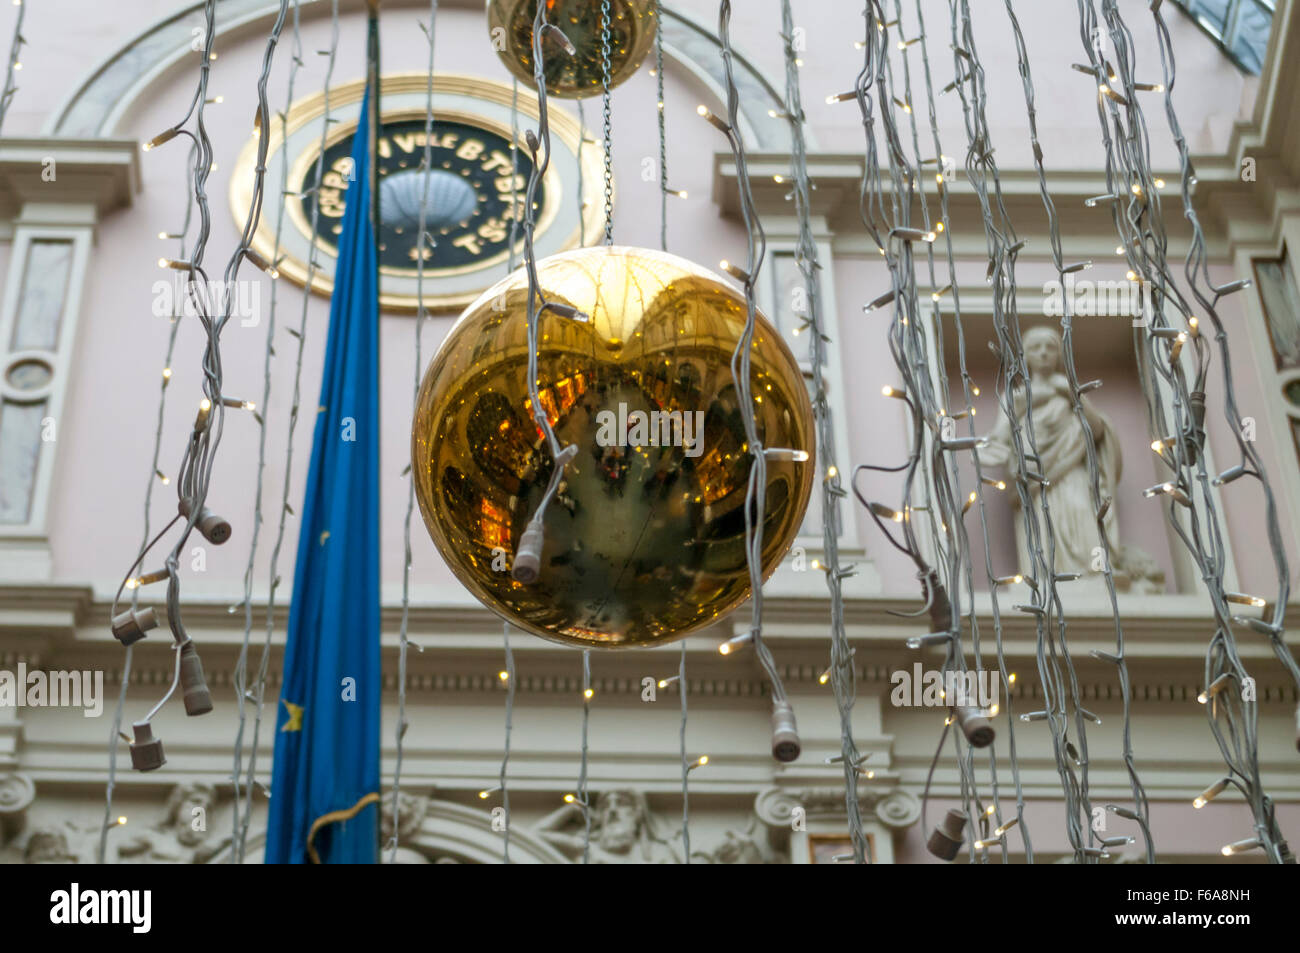 Christmas ornament reflection of the Galeries Royales Saint-Hubert, a traditional shopping arcade in Brussels, Belgium. - Stock Image